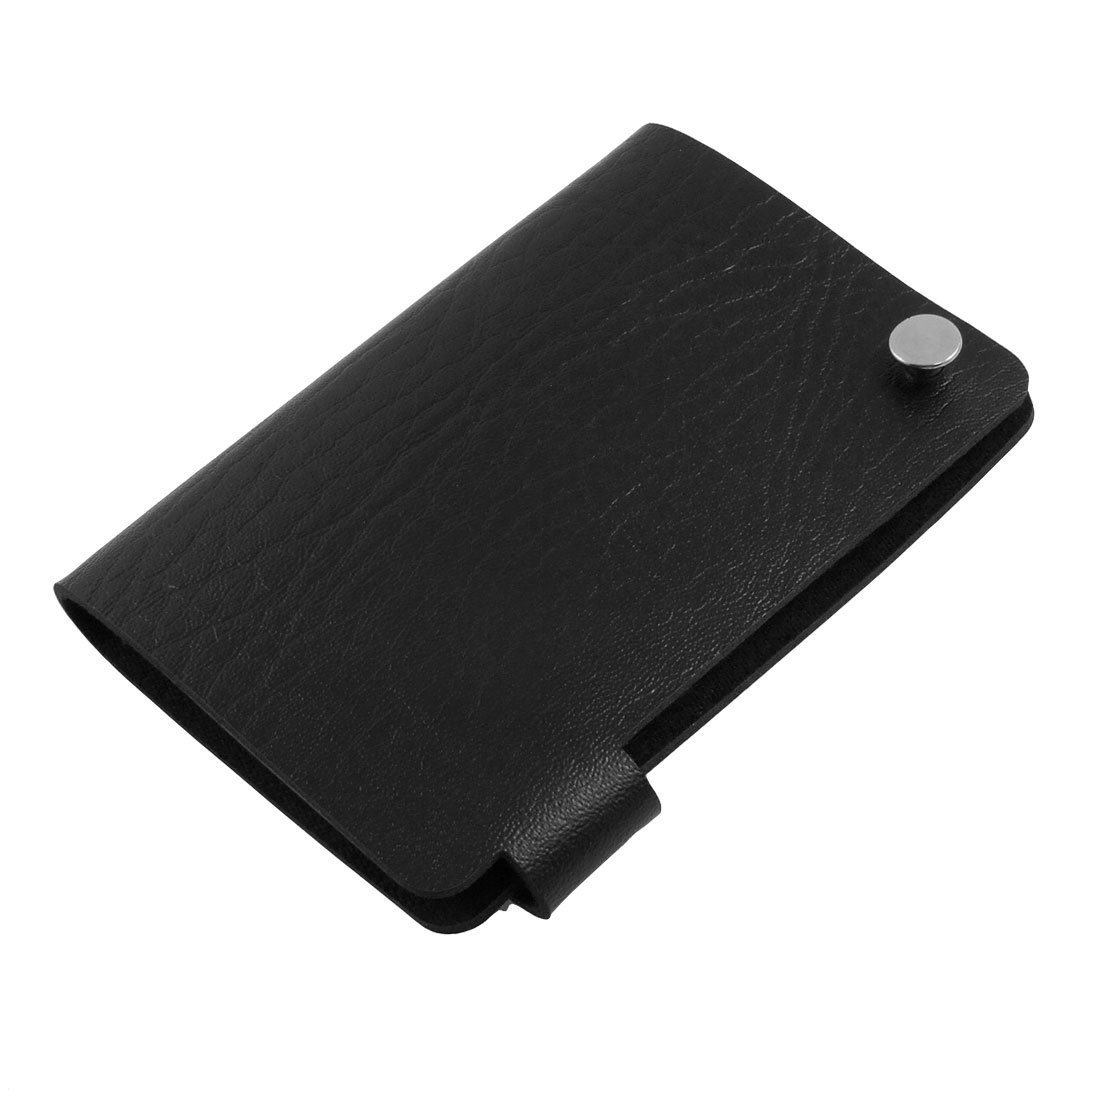 Uxcell Faux Leather Textured 10 Pockets Business Card Case Wallet, Black